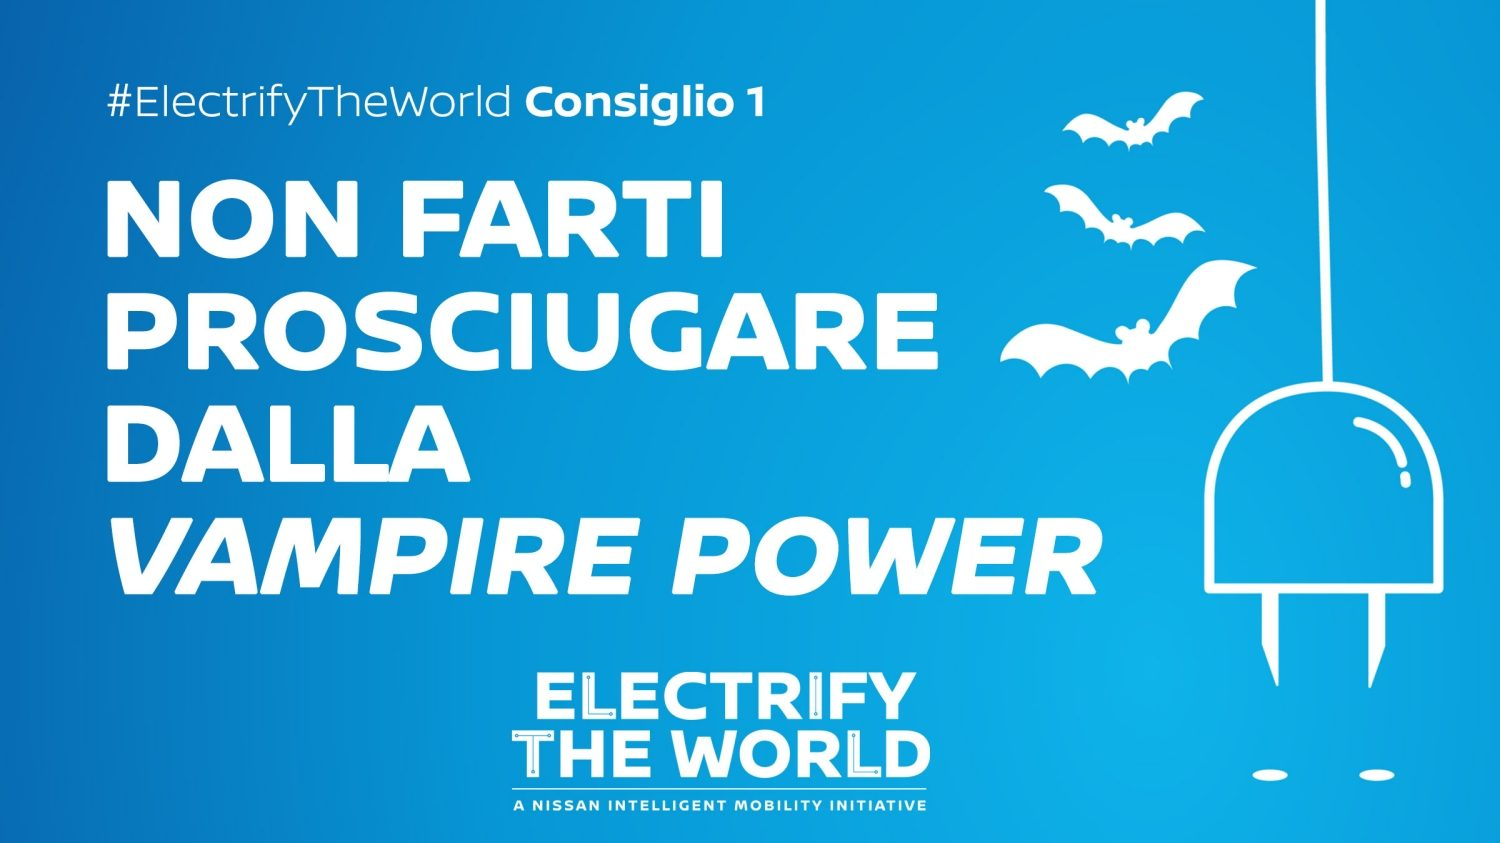 Electrify the World – Vampire power